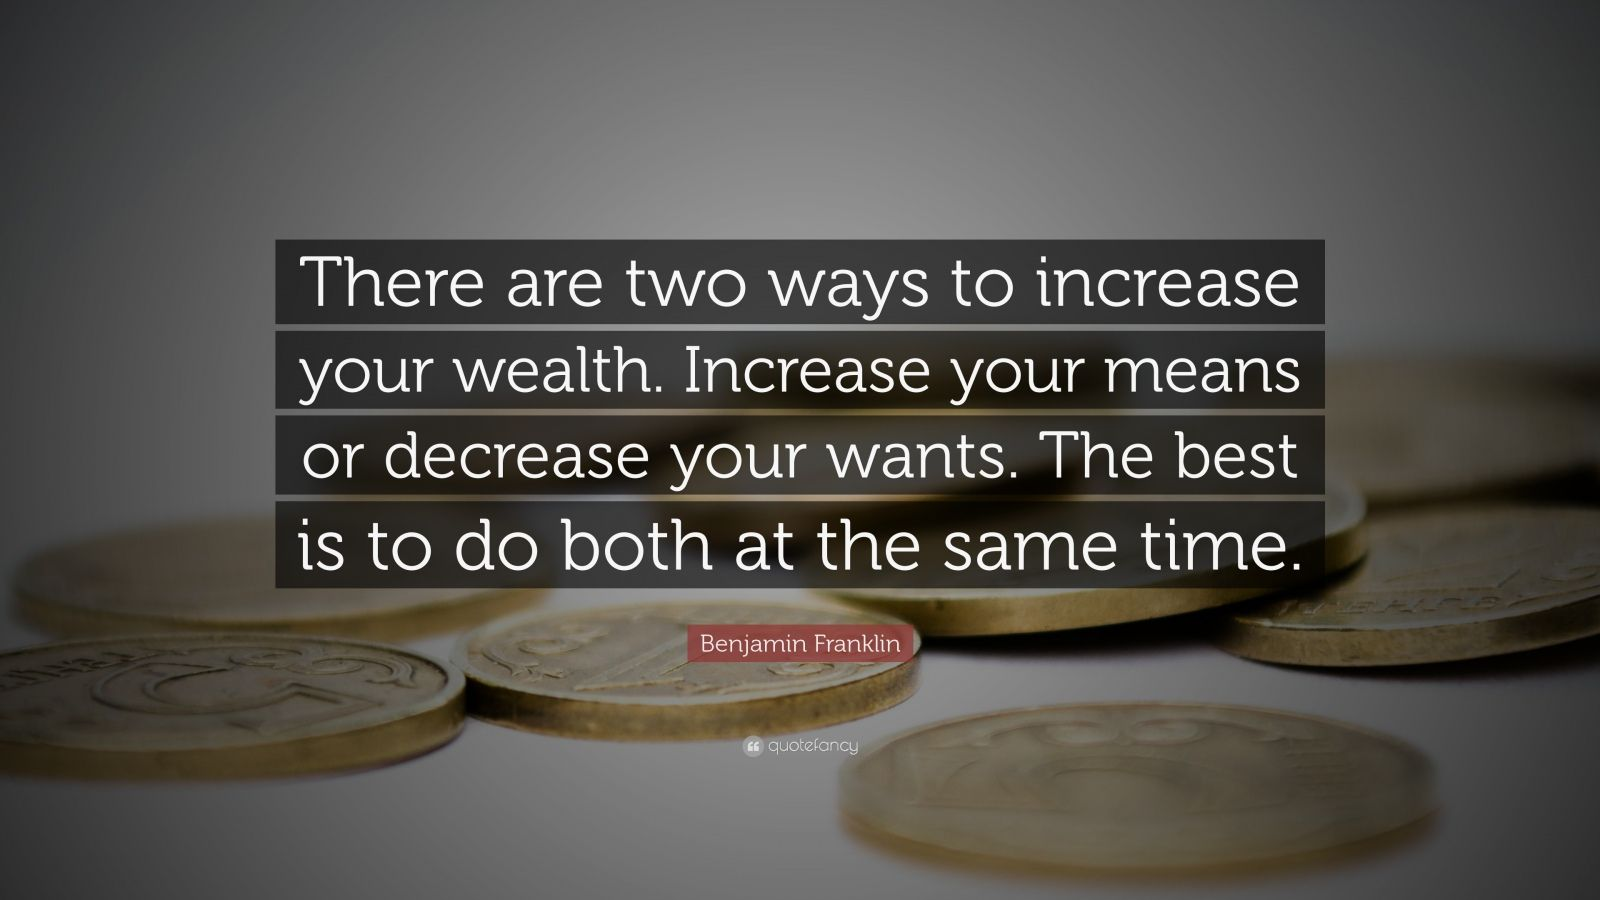 Business Success Quotes Wallpaper Benjamin Franklin Quote There Are Two Ways To Increase